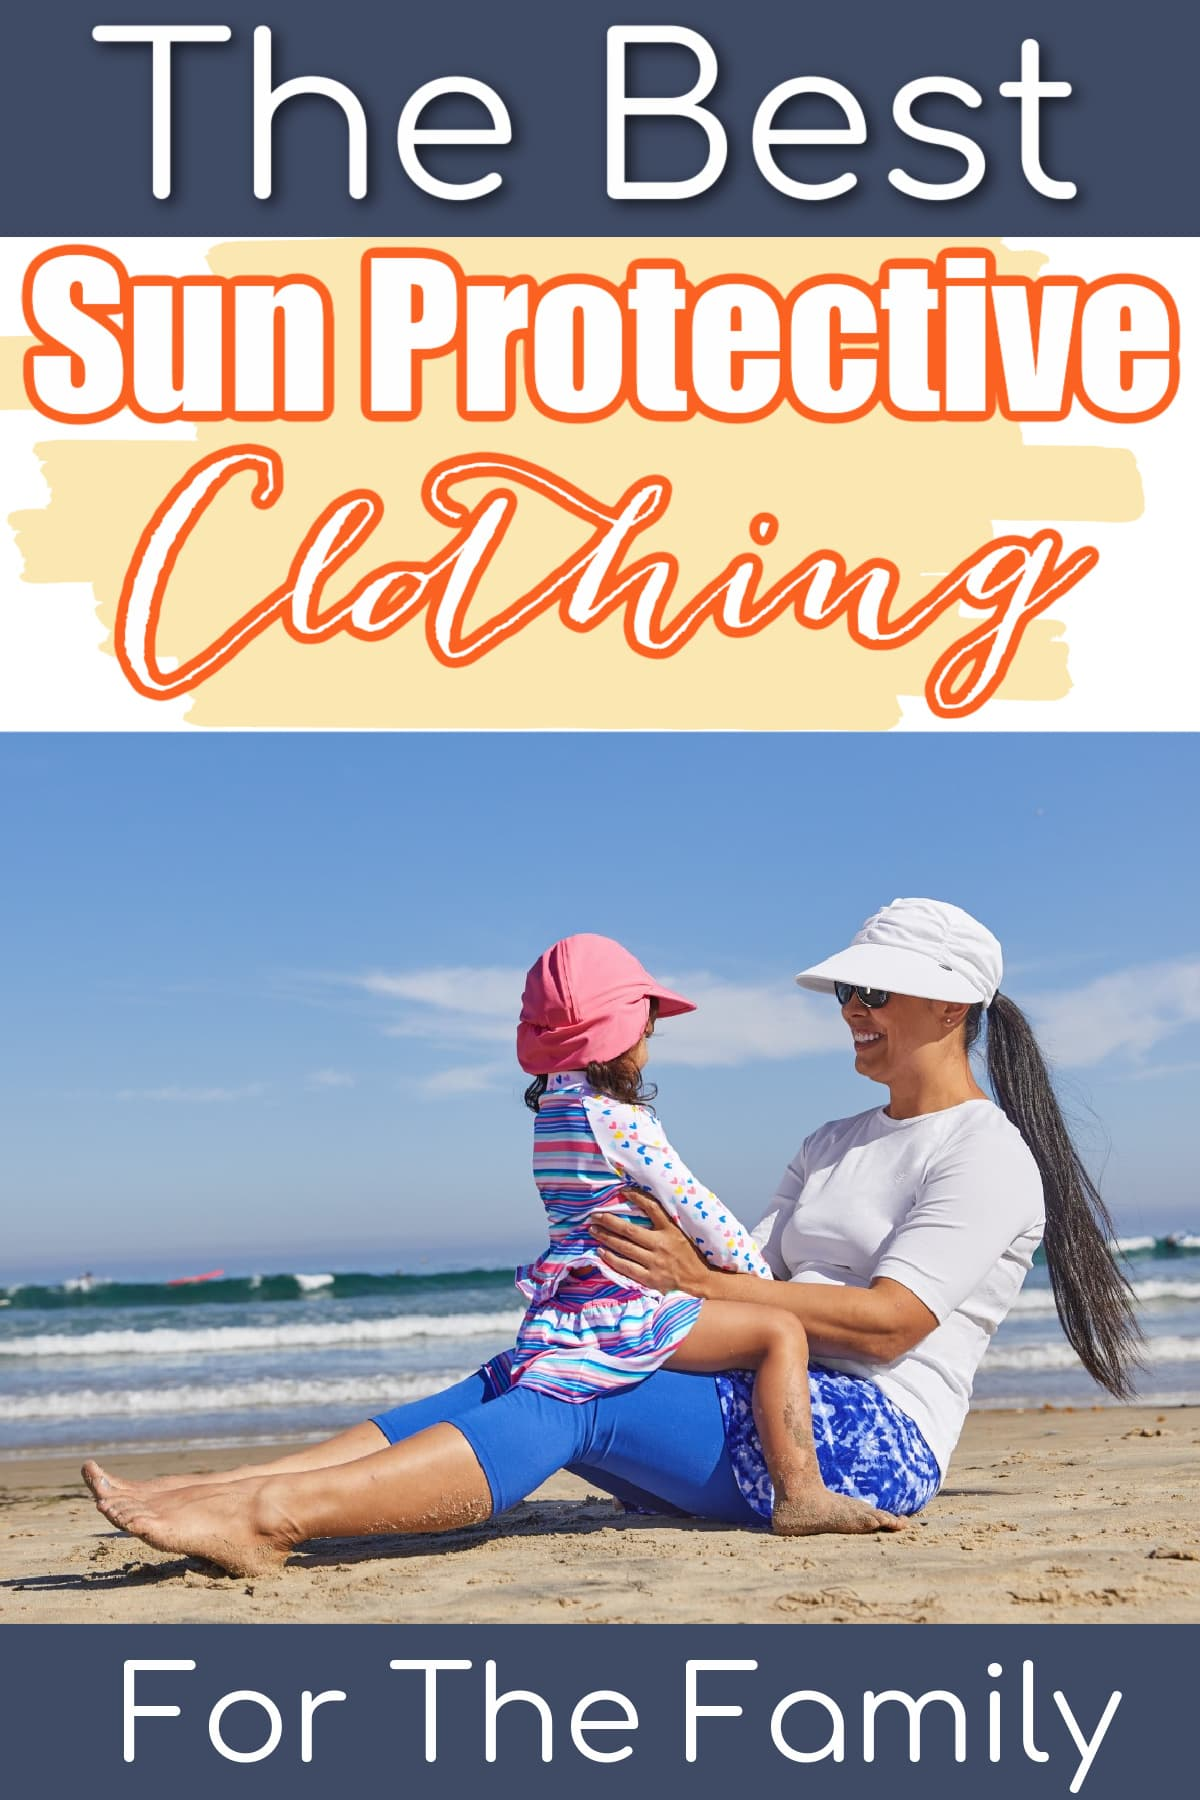 Best Sun Protective Clothing For The Whole Family